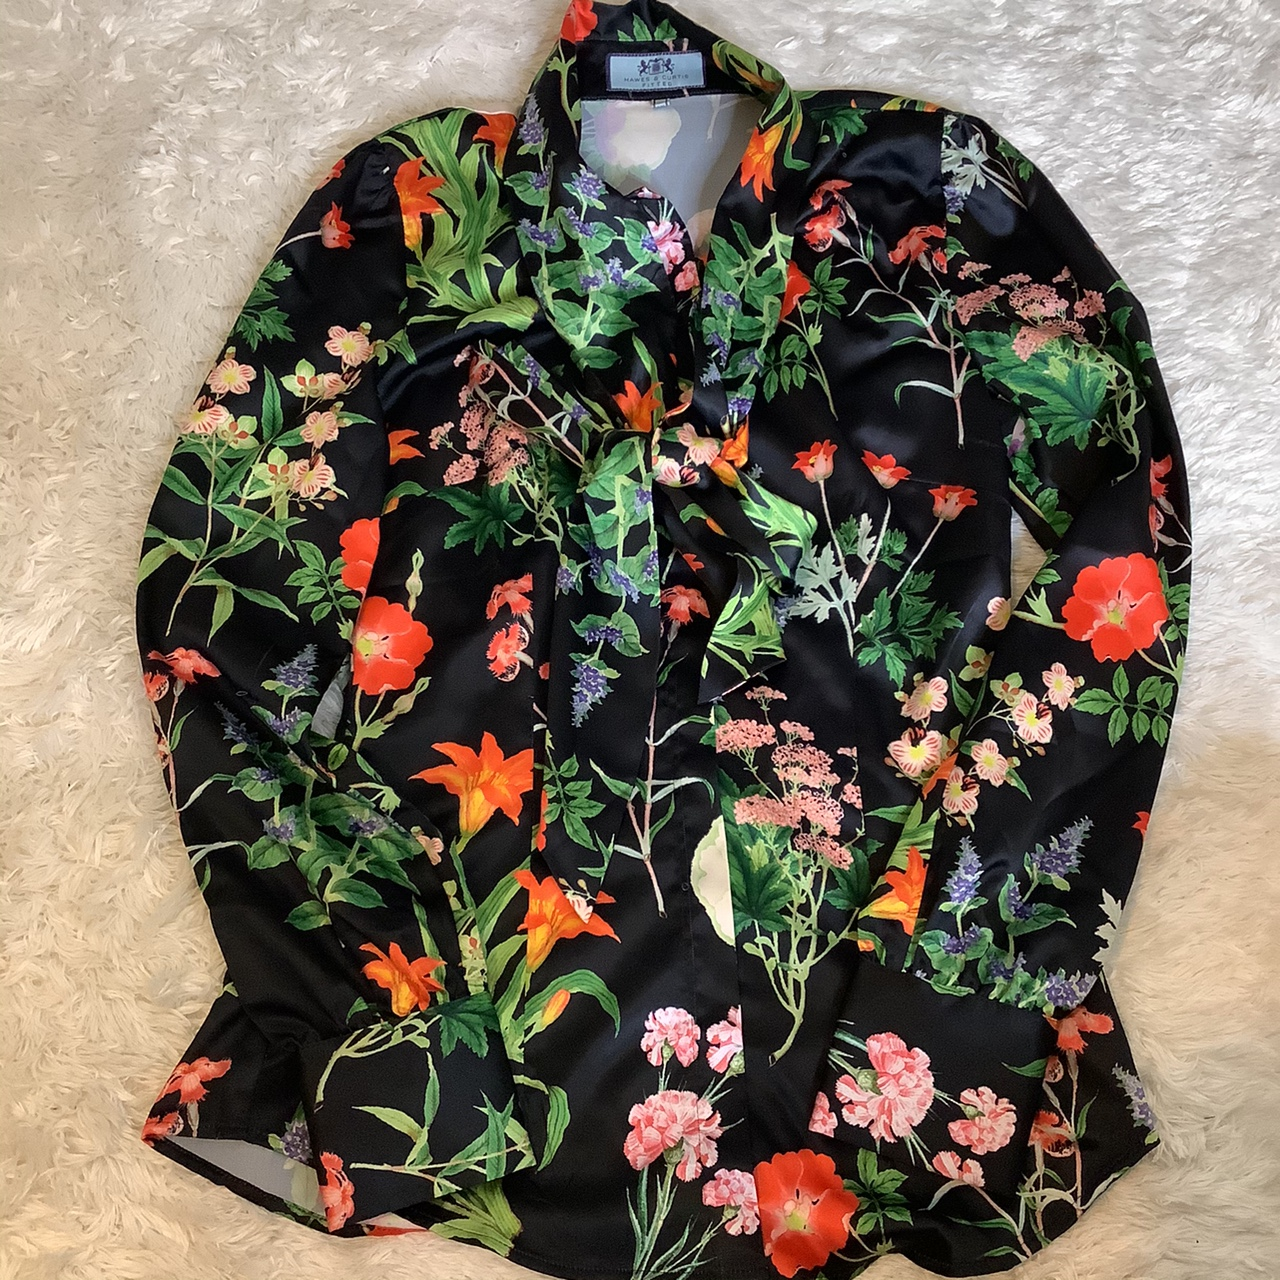 Product Image 1 - Hawes & Curtis floral print